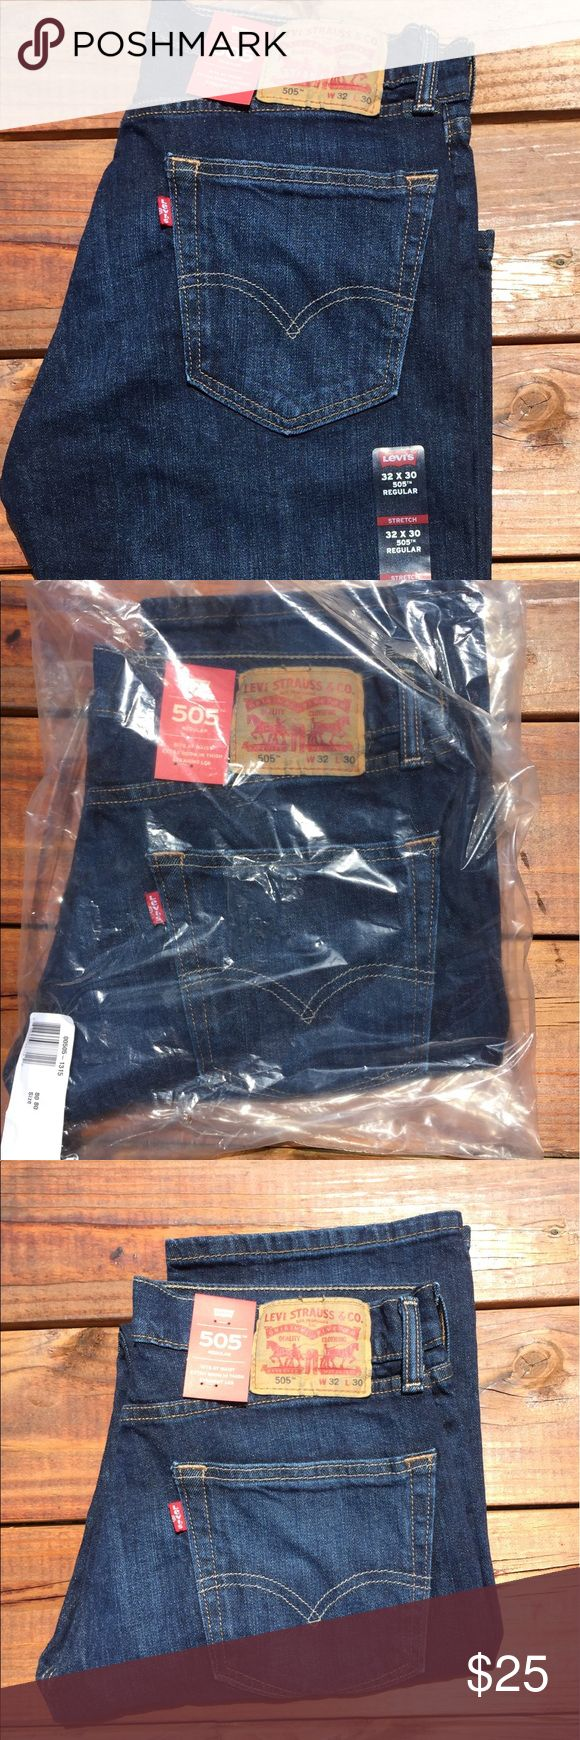 Levi's 505 Regular Fit Stretch Jeans 32x30 New Levi's 506 Regular Fit Jeans Stretch 32x30 Dark Stonewash.             New with tags    Item#005051314 Levi's Jeans Straight